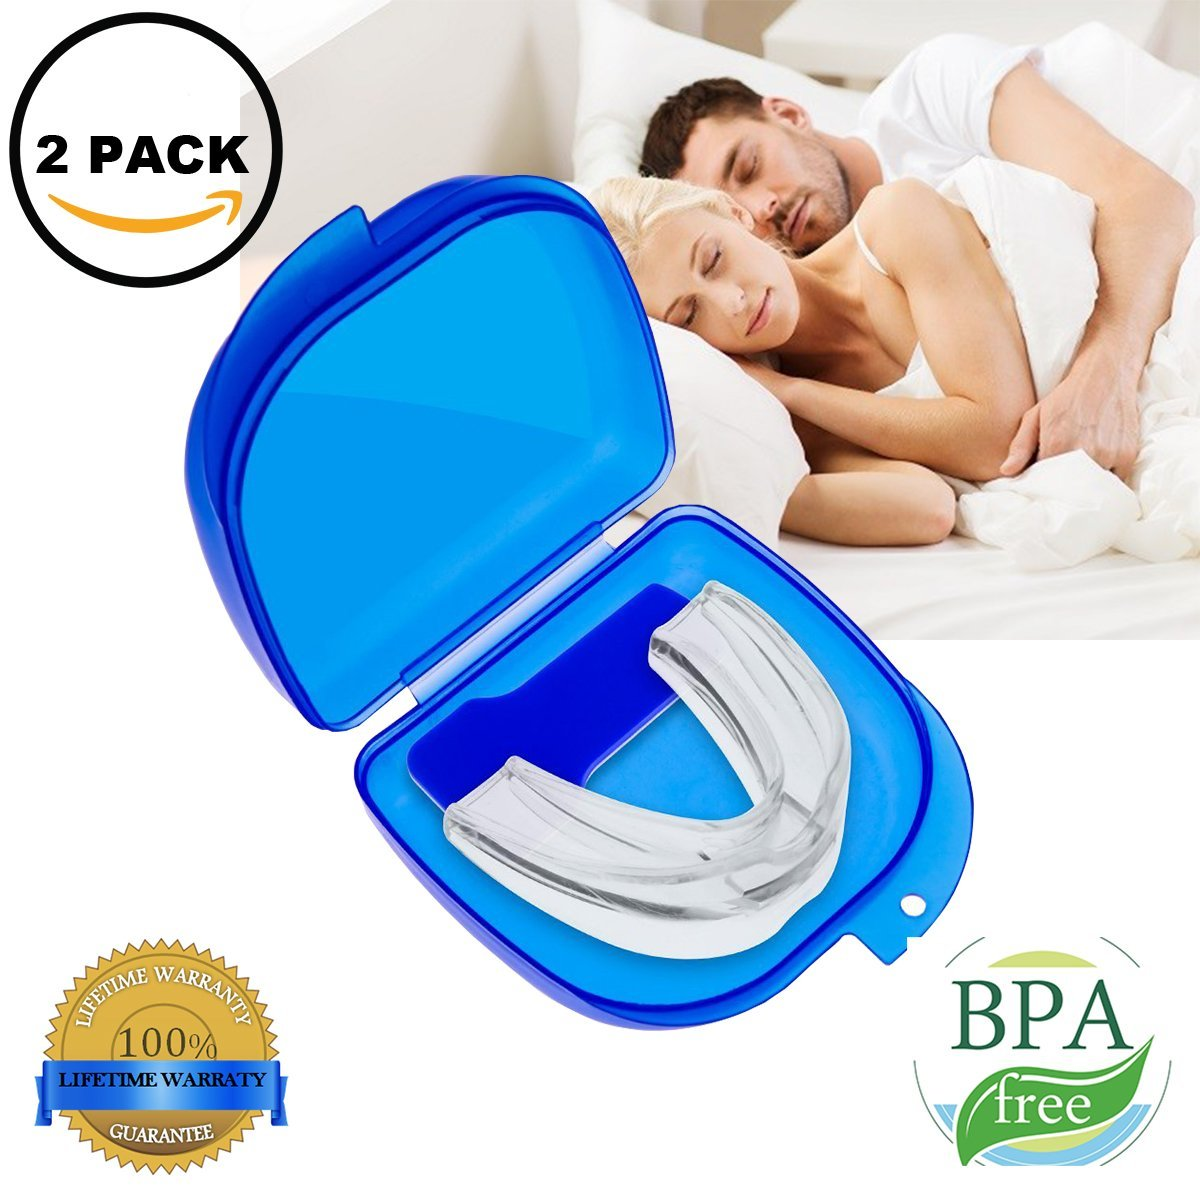 Mouth Guard for Grinding Teeth, Snoring Mouthpiece, Night Guards for Teeth Grinding, Snoring Solution, Dental TMJ Mouth and Bite Guard for teeth grinding 2 Pack (white)